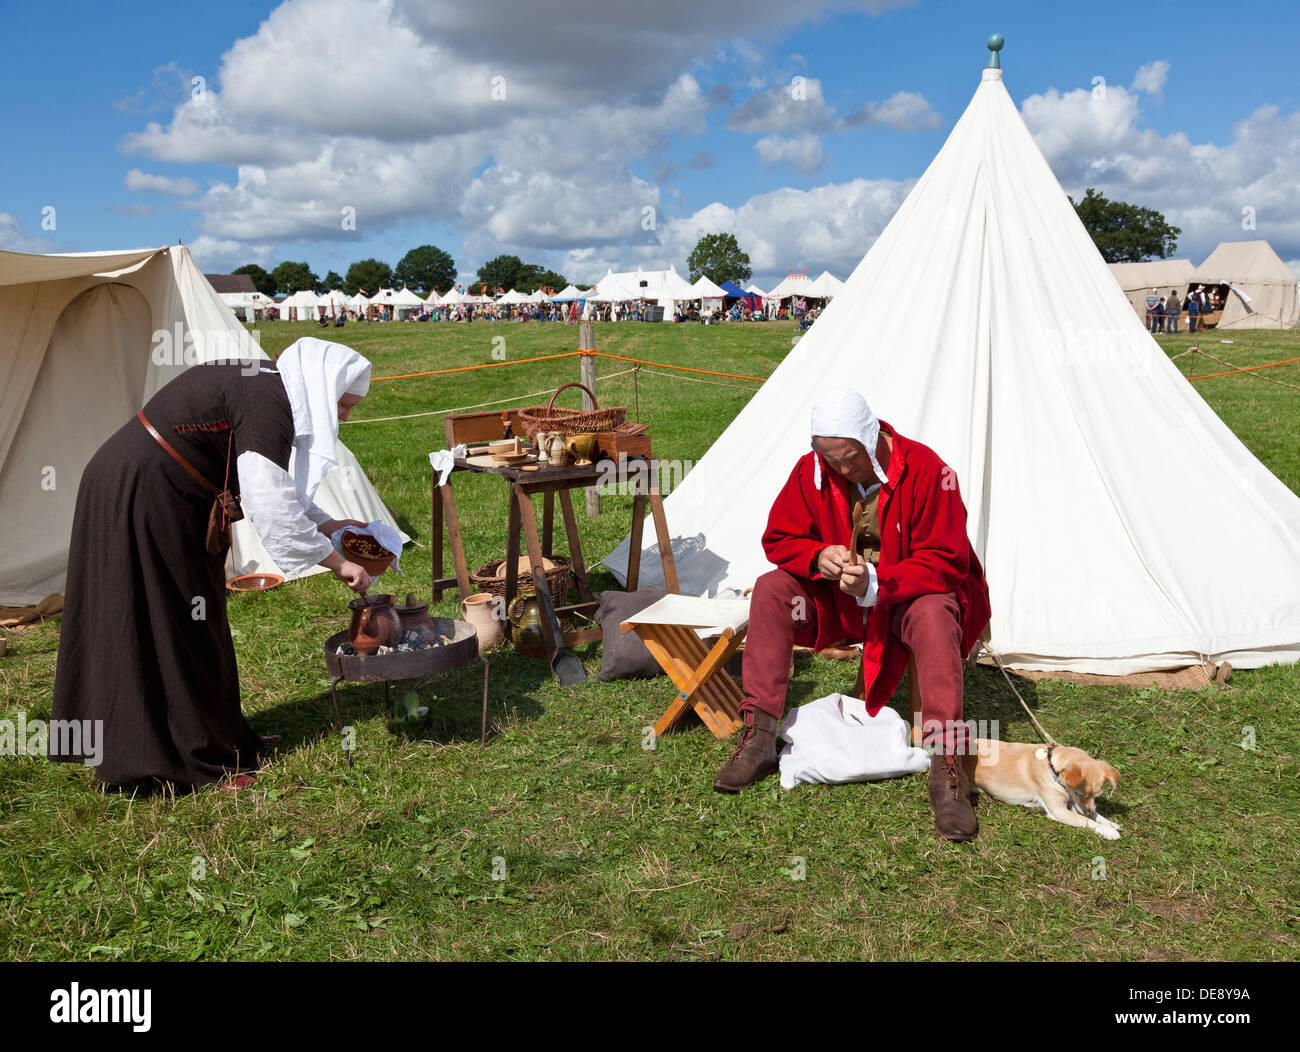 Wars of the Roses Federation followers at the Battle of Bosworth re-enactment Hinckley Leicestershire England GB UK EU Europe - Stock Image